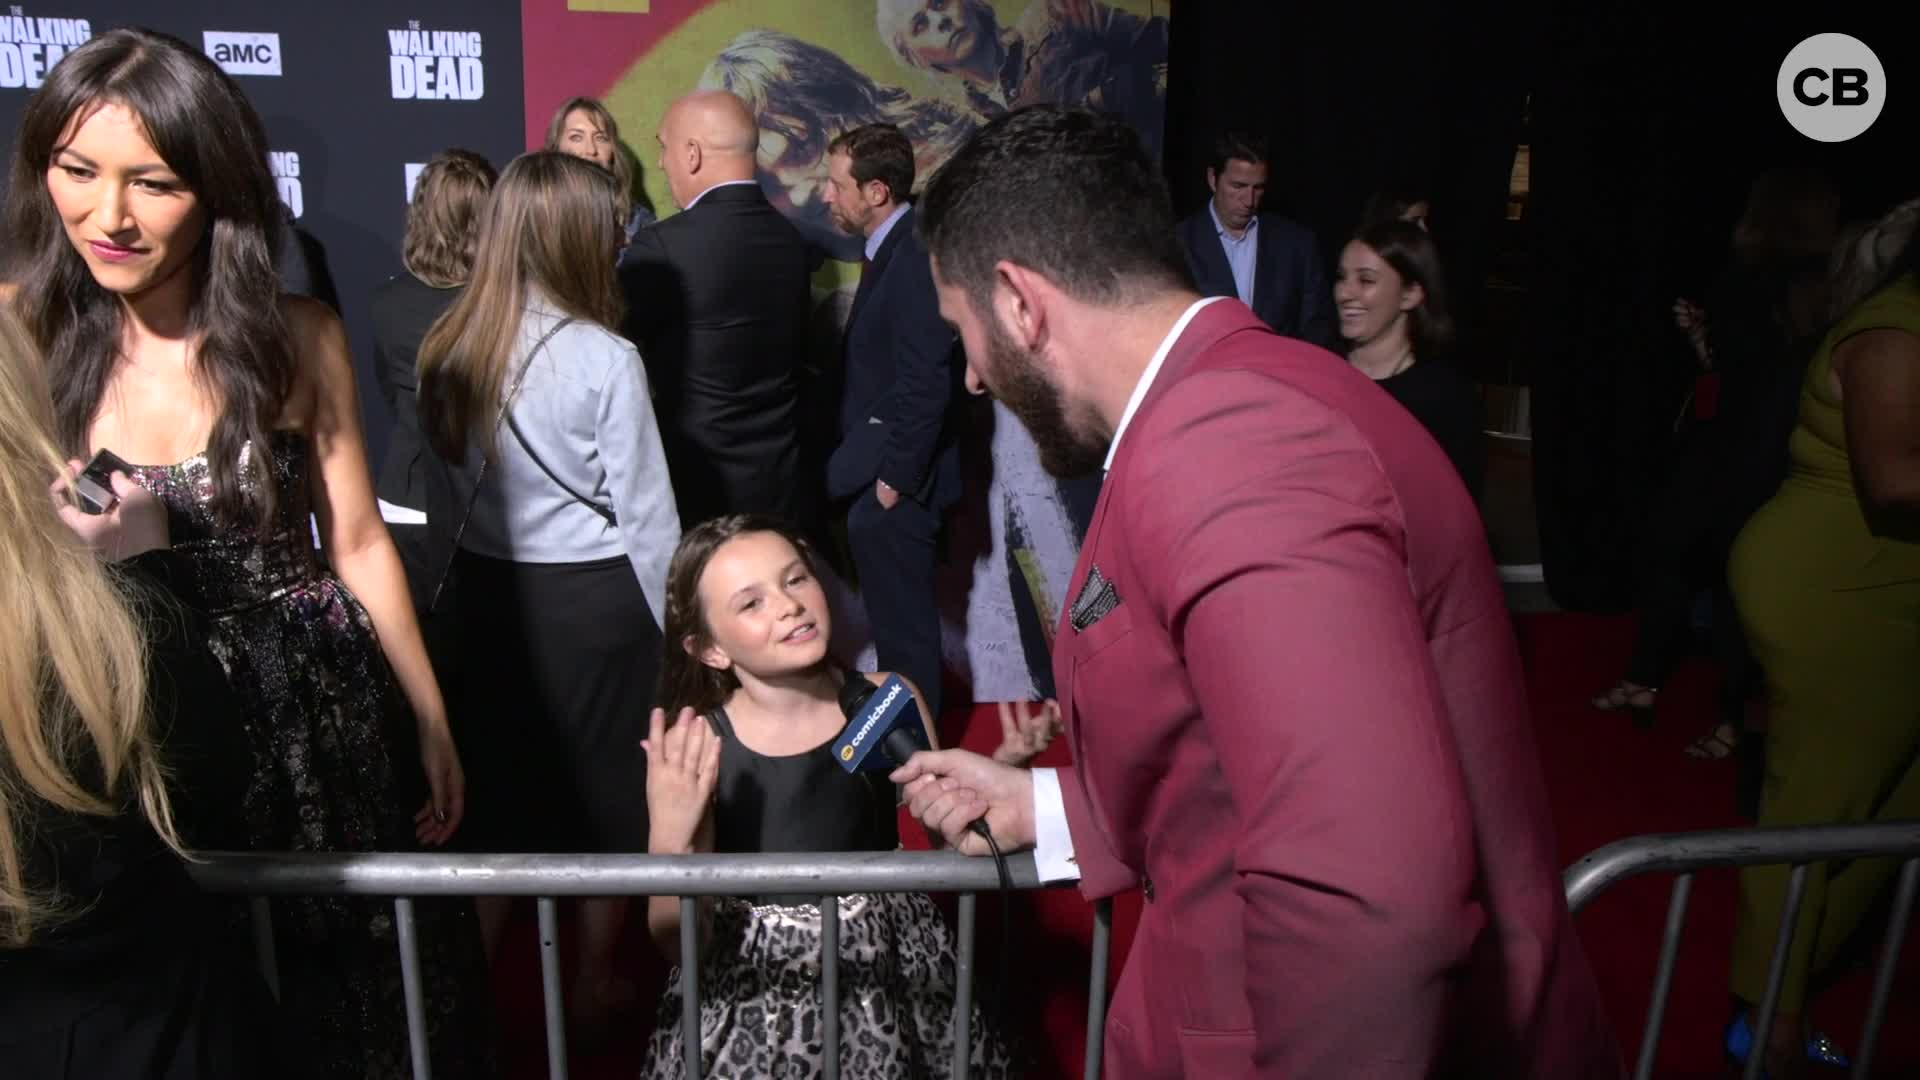 Cailey Fleming - THE WALKING DEAD Season 10 Red Carpet Premiere Interview screen capture